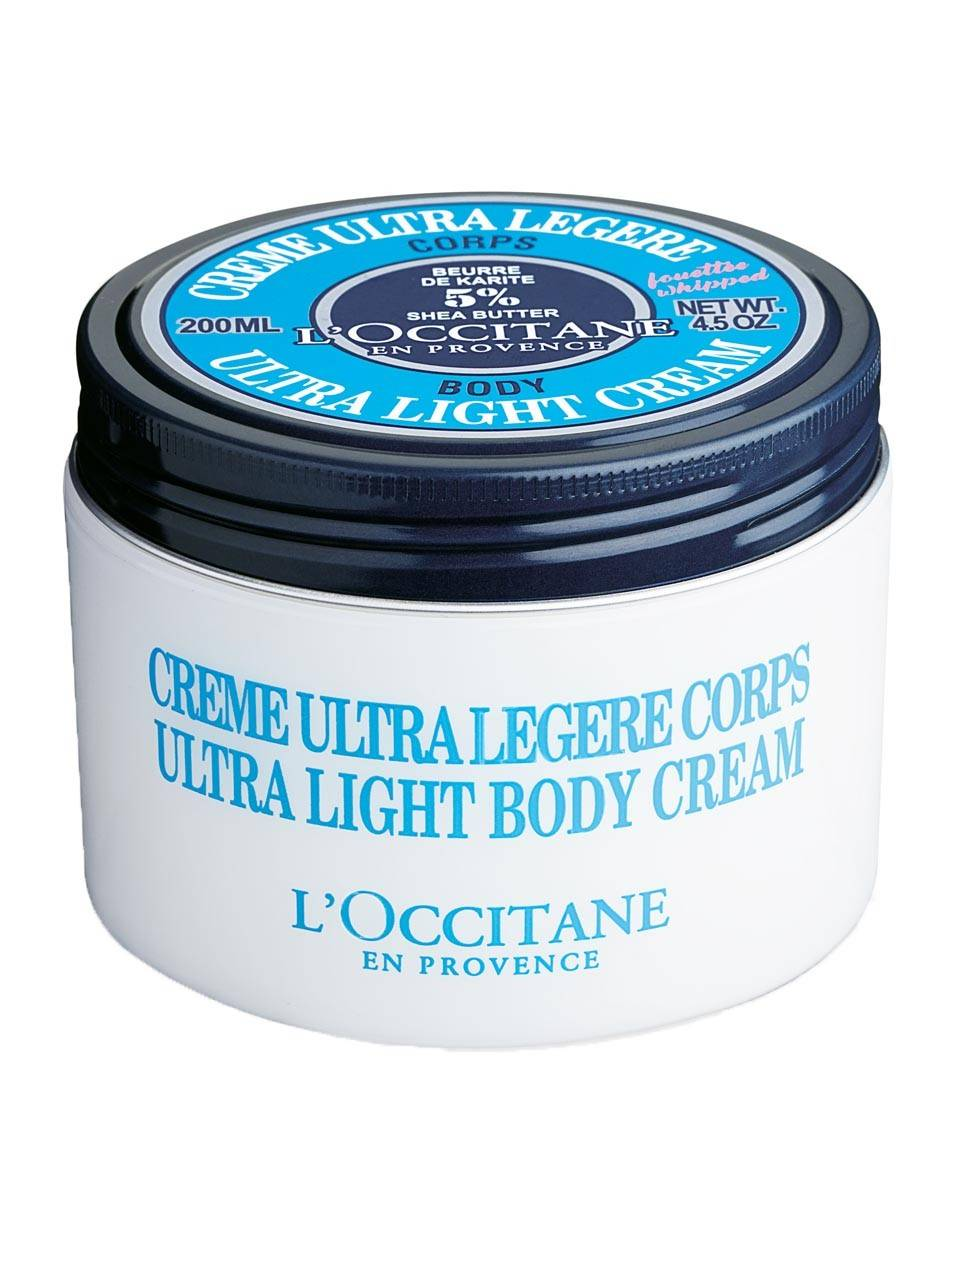 L'OCCITANE ITALIA Srl L'Occitane Shea Shea Ultra Light Corps Corps 200ml